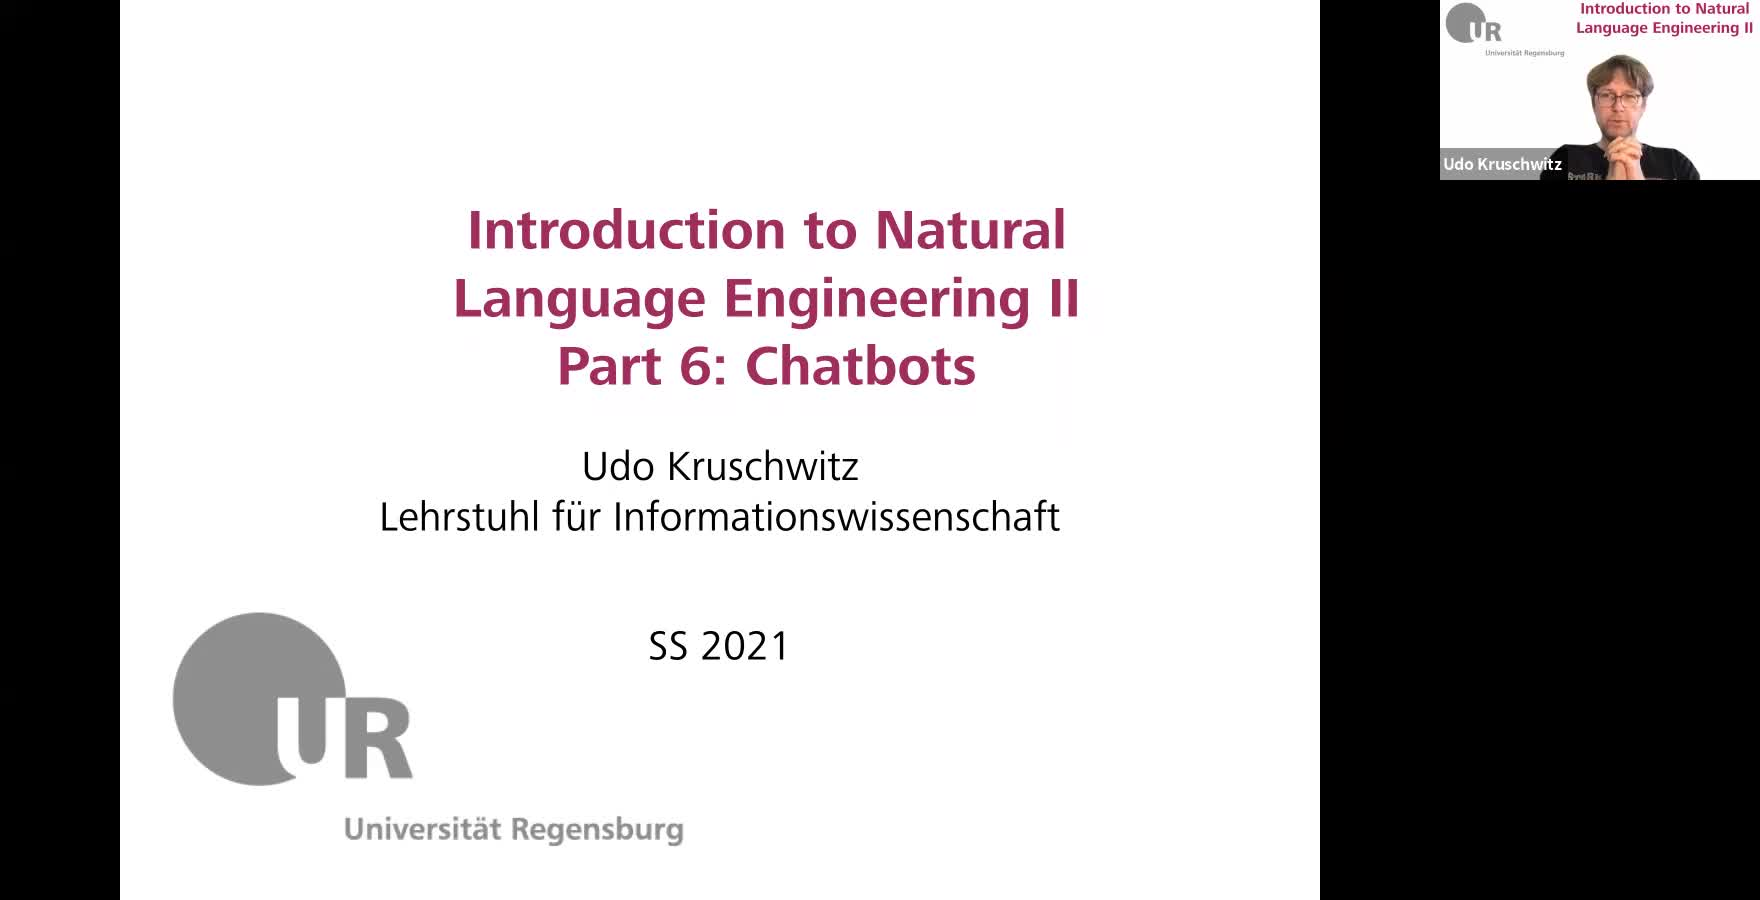 Introduction to Natural Language Engineering 2 / Informationslinguistik 2 - Lecture 8 (Chatbots)